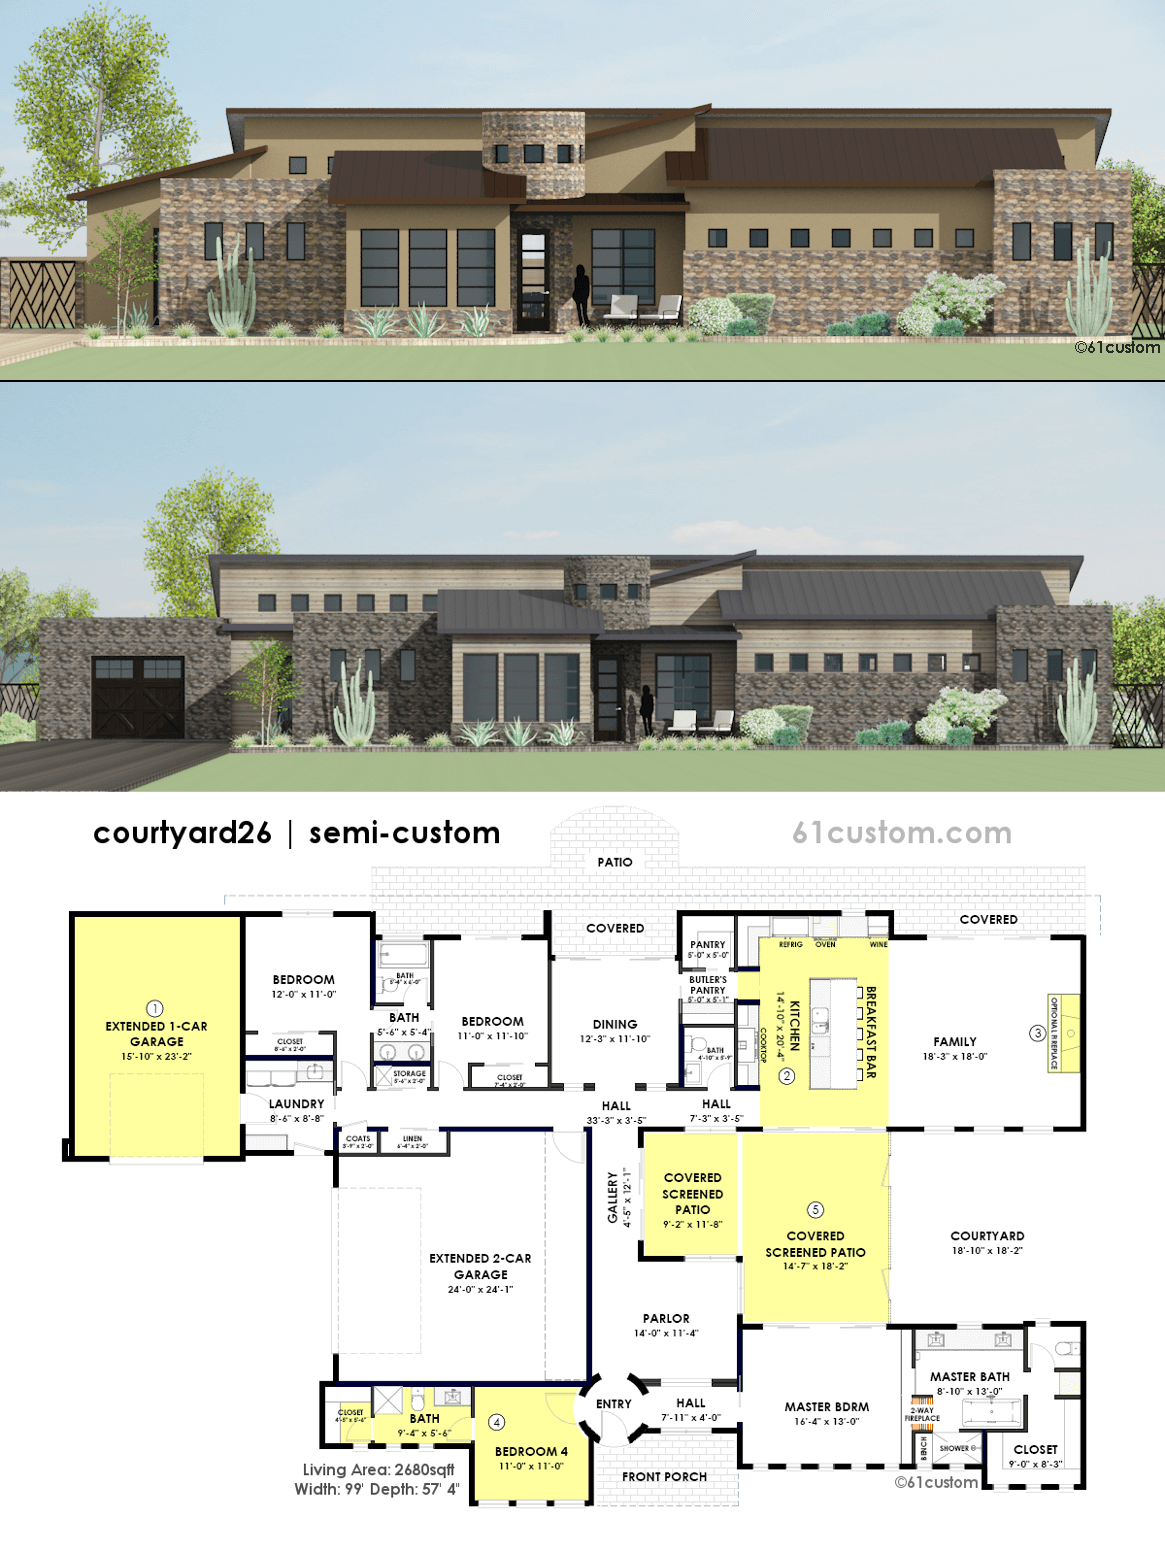 Contemporary side courtyard house plan 61custom for Modern house designs and floor plans